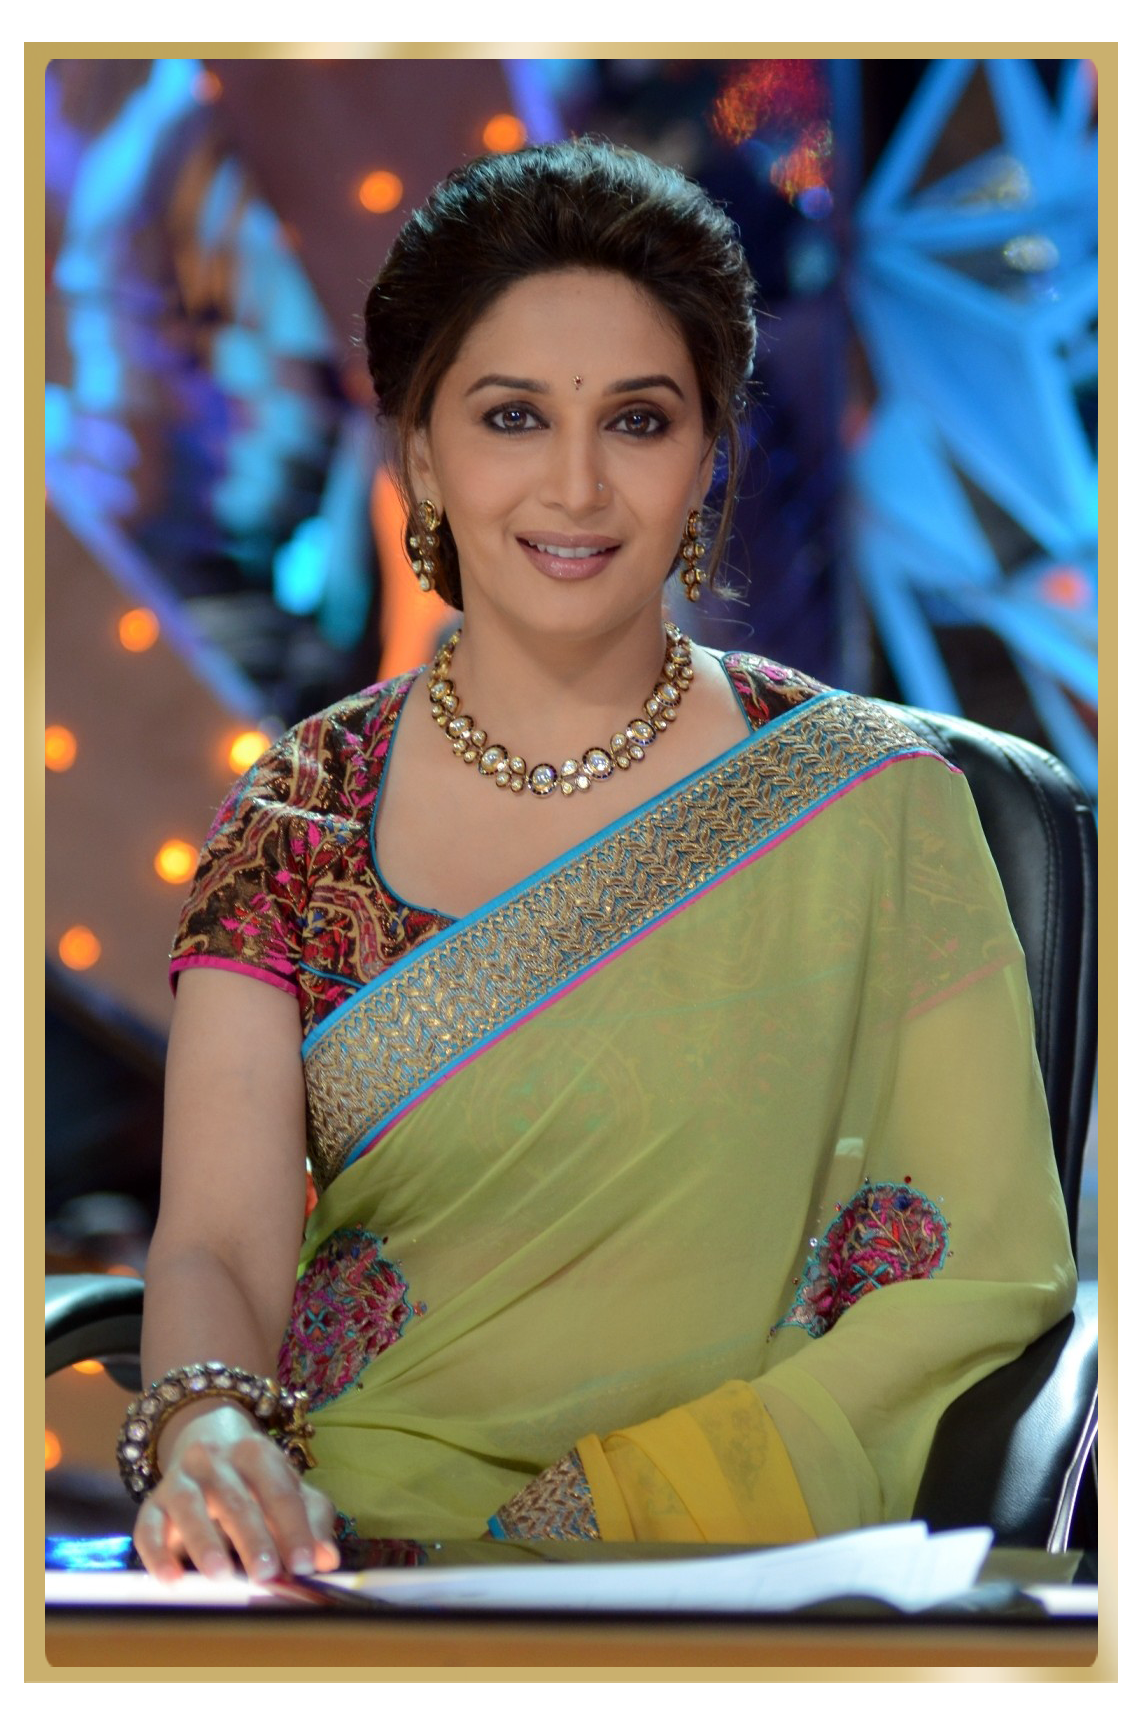 Showing Xxx Images For Madhuri Dixit 2013 Xxx  Www